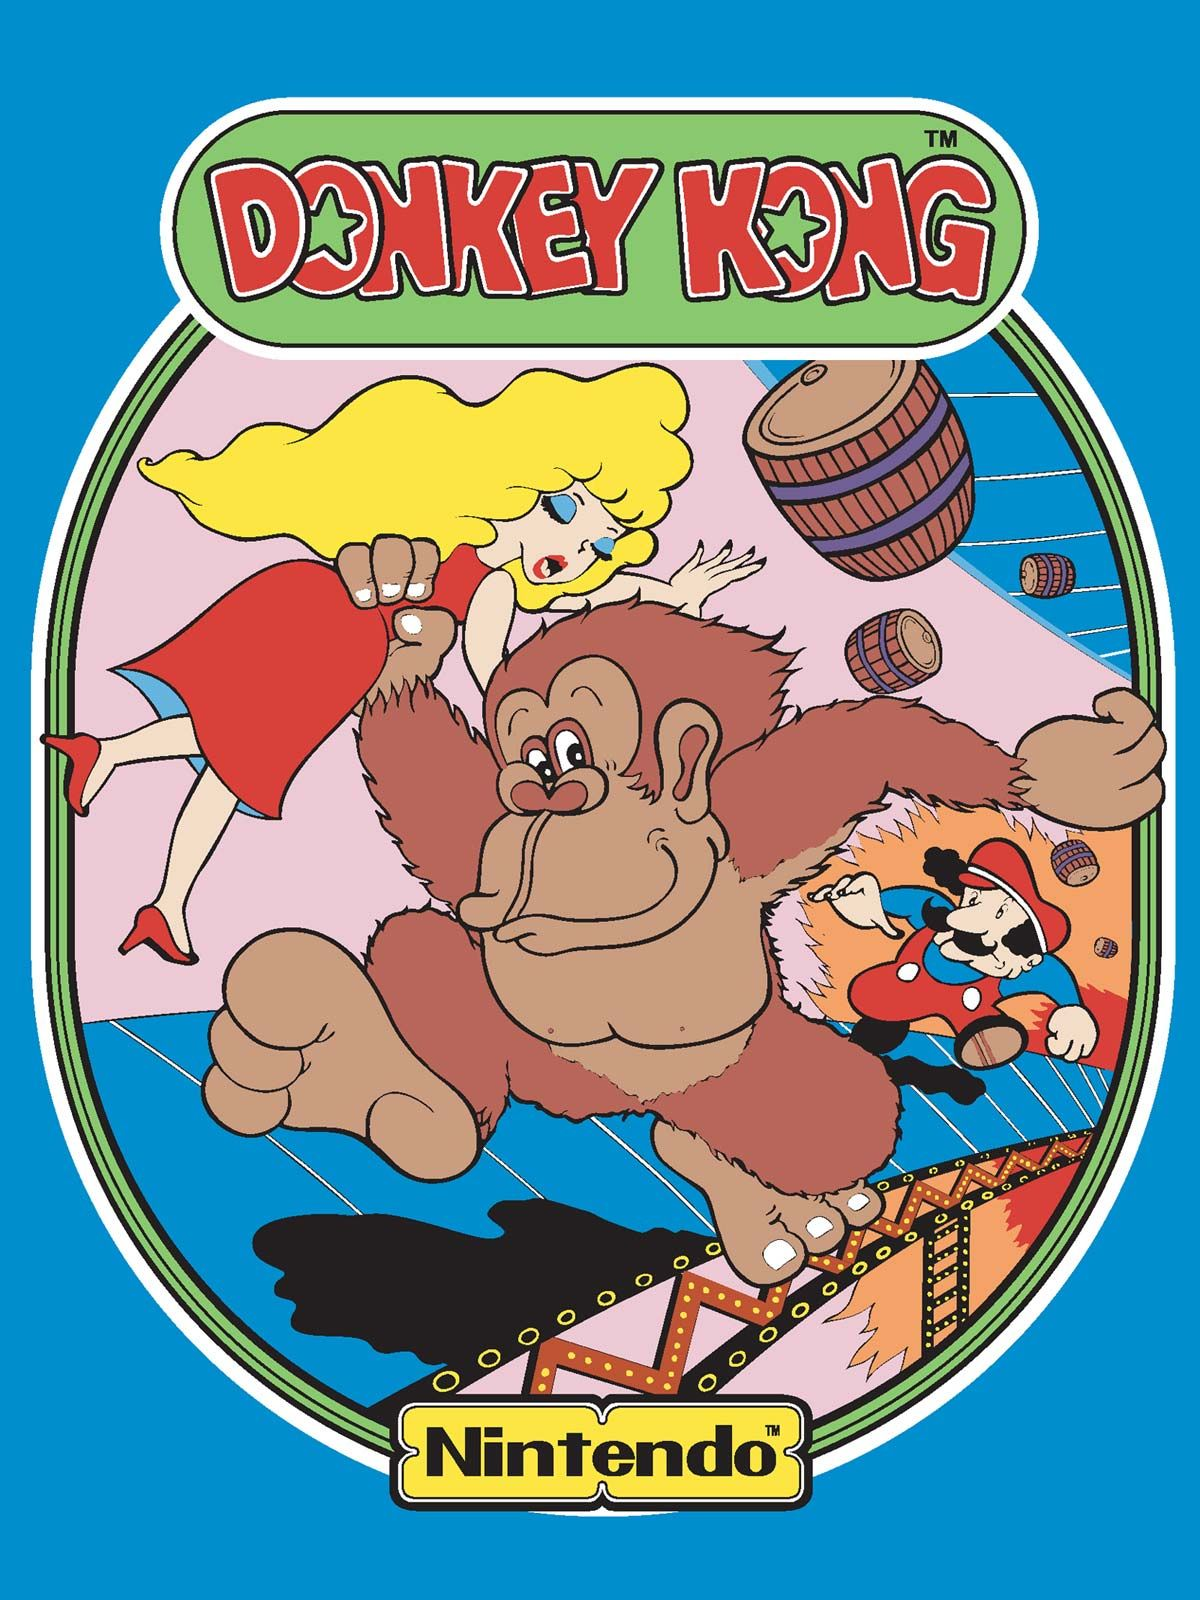 Donkey Kong Side Art The book